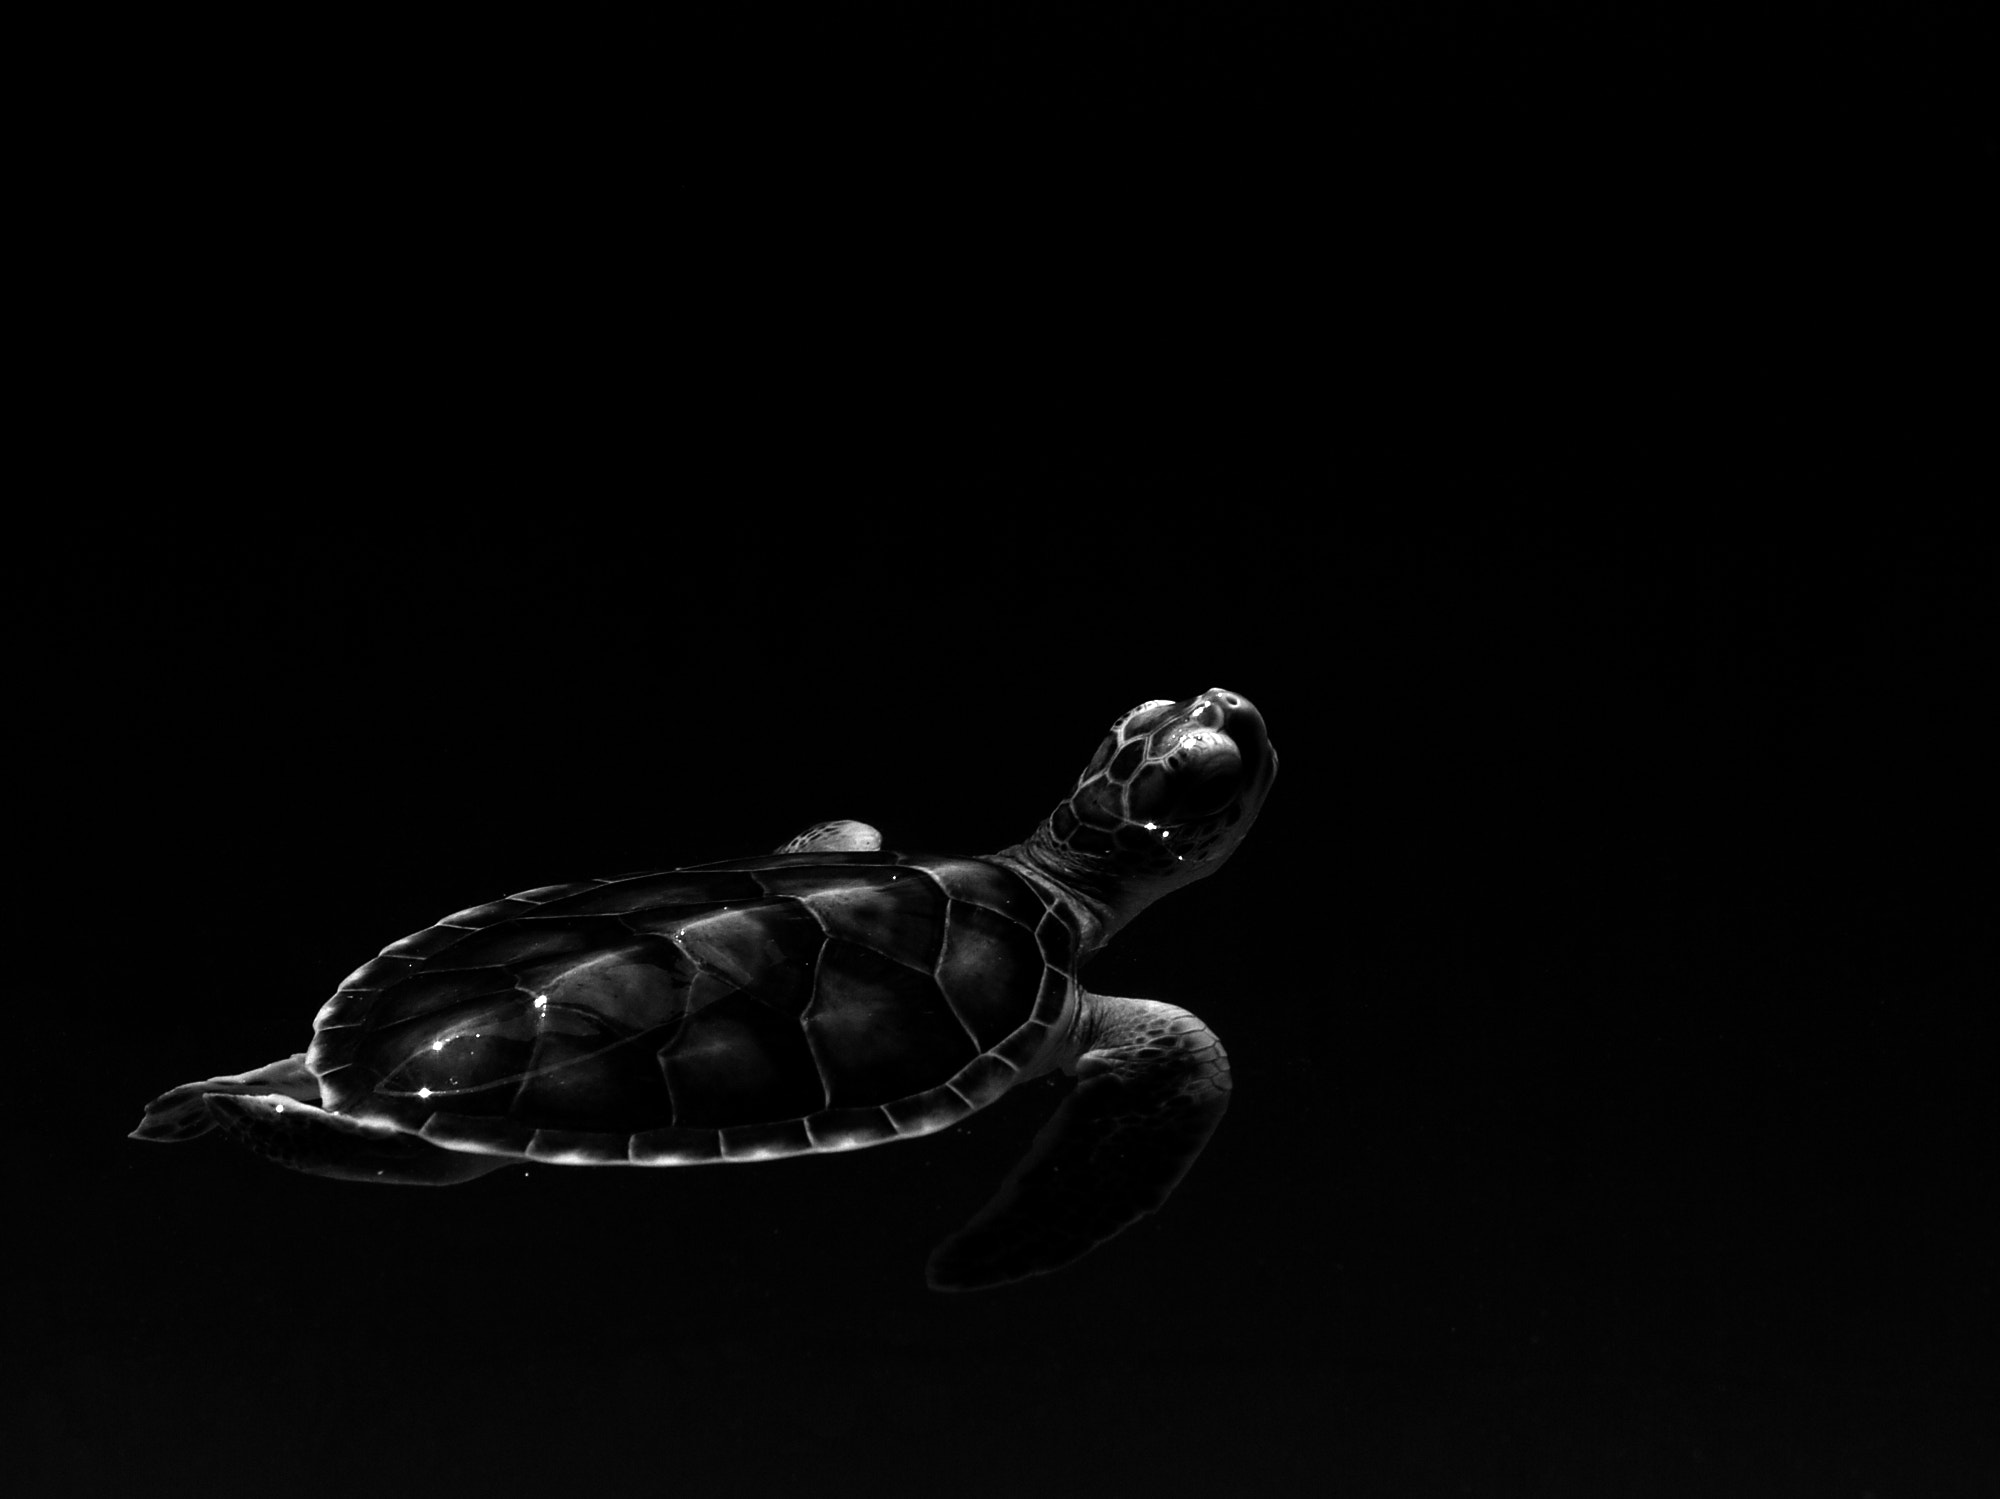 Photograph little turtle by Waratharn Puengkaew on 500px